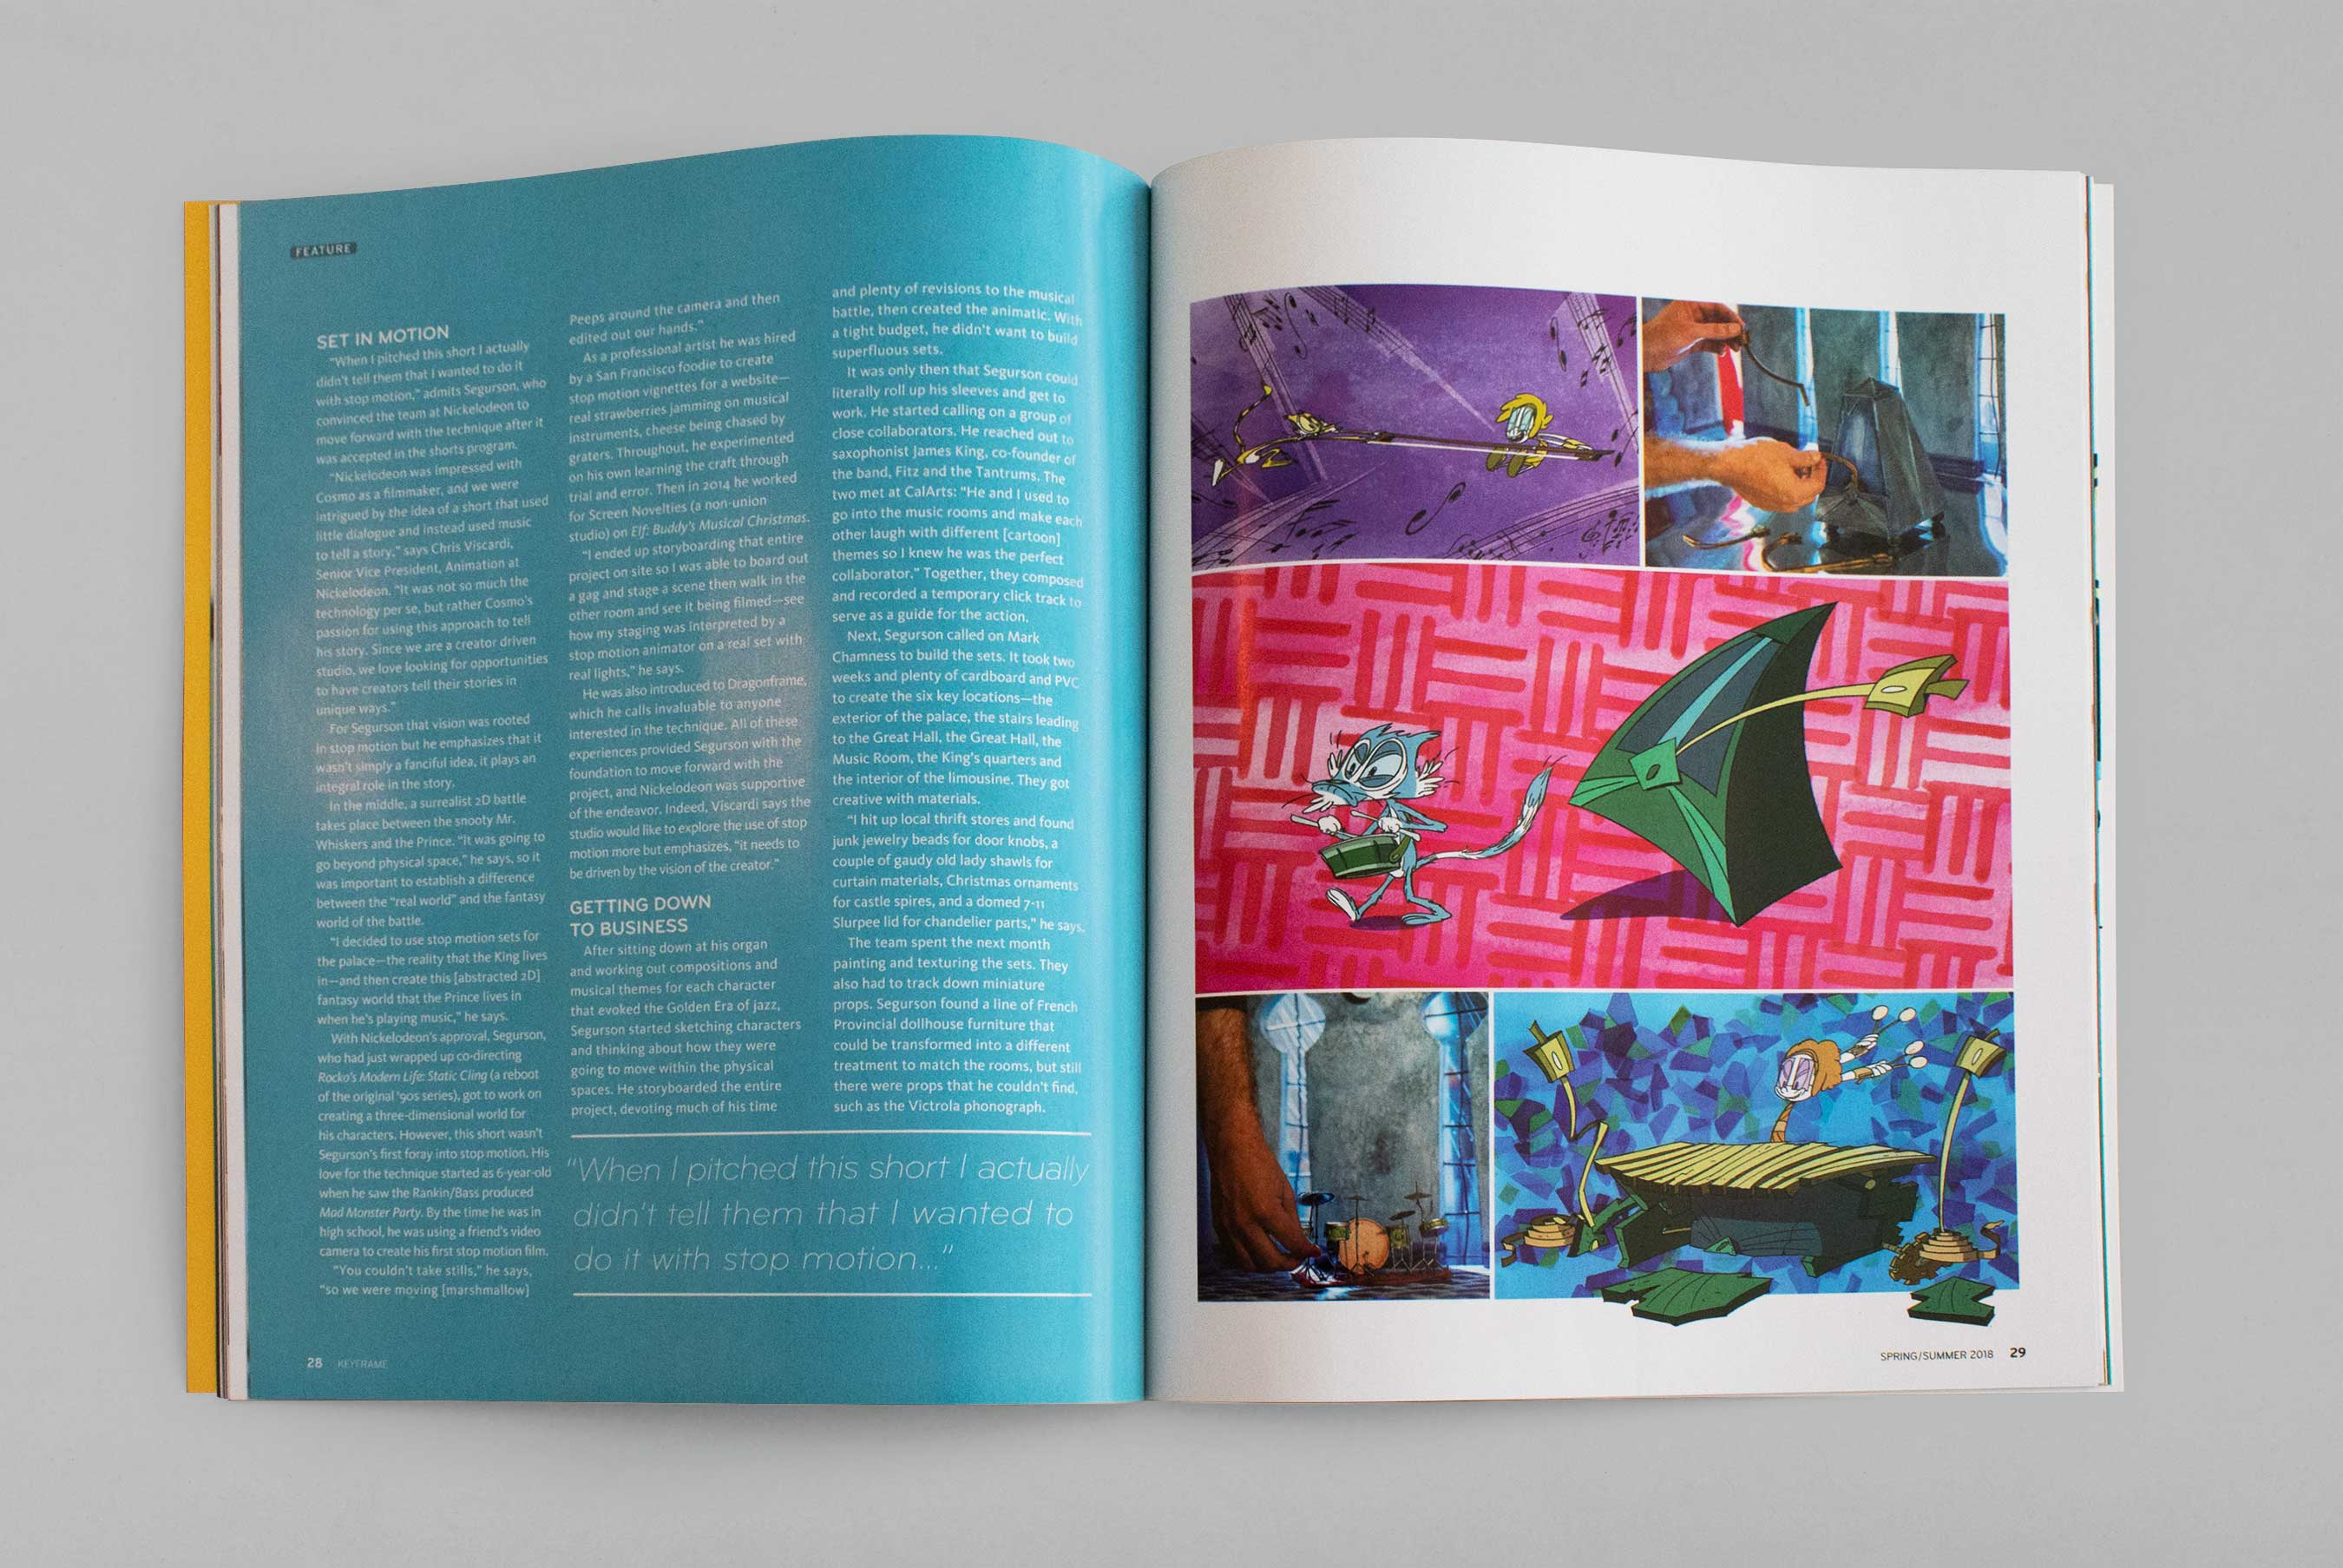 a colorful magazine spread with text on the left and a comic-book like page on the right, featuring photos of a stop-motion setup as well as stills from a cartoon